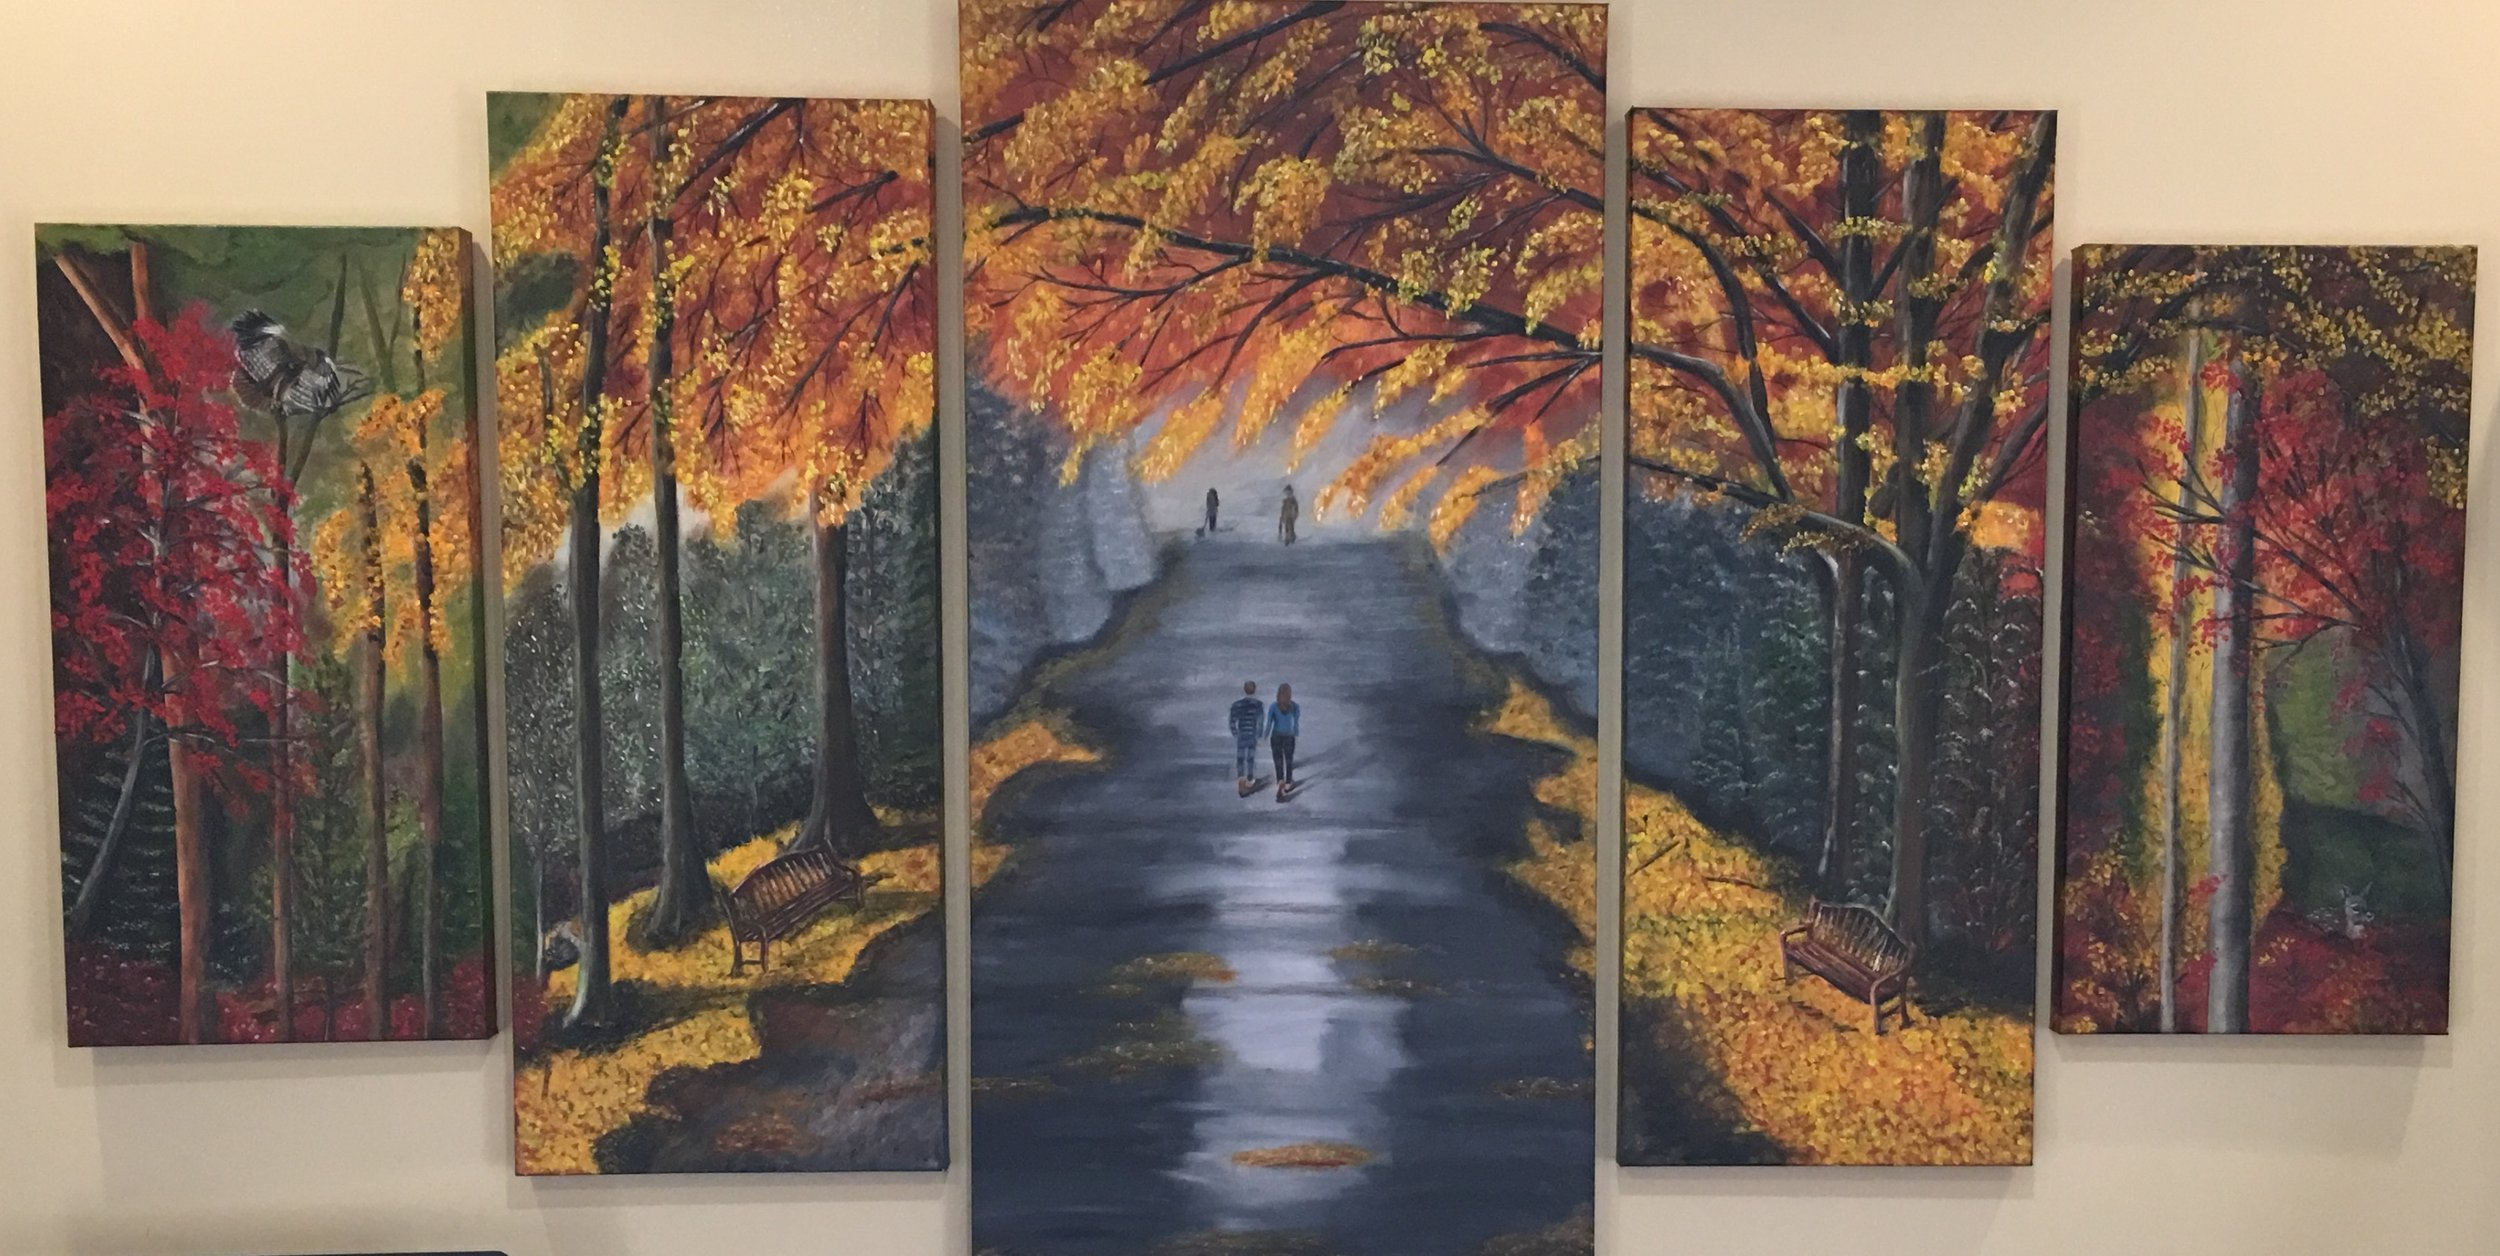 """""""Fall Together"""" by Teresa McCarthy, 60x40in (polyptch), oil on canvas (2016), $1400 